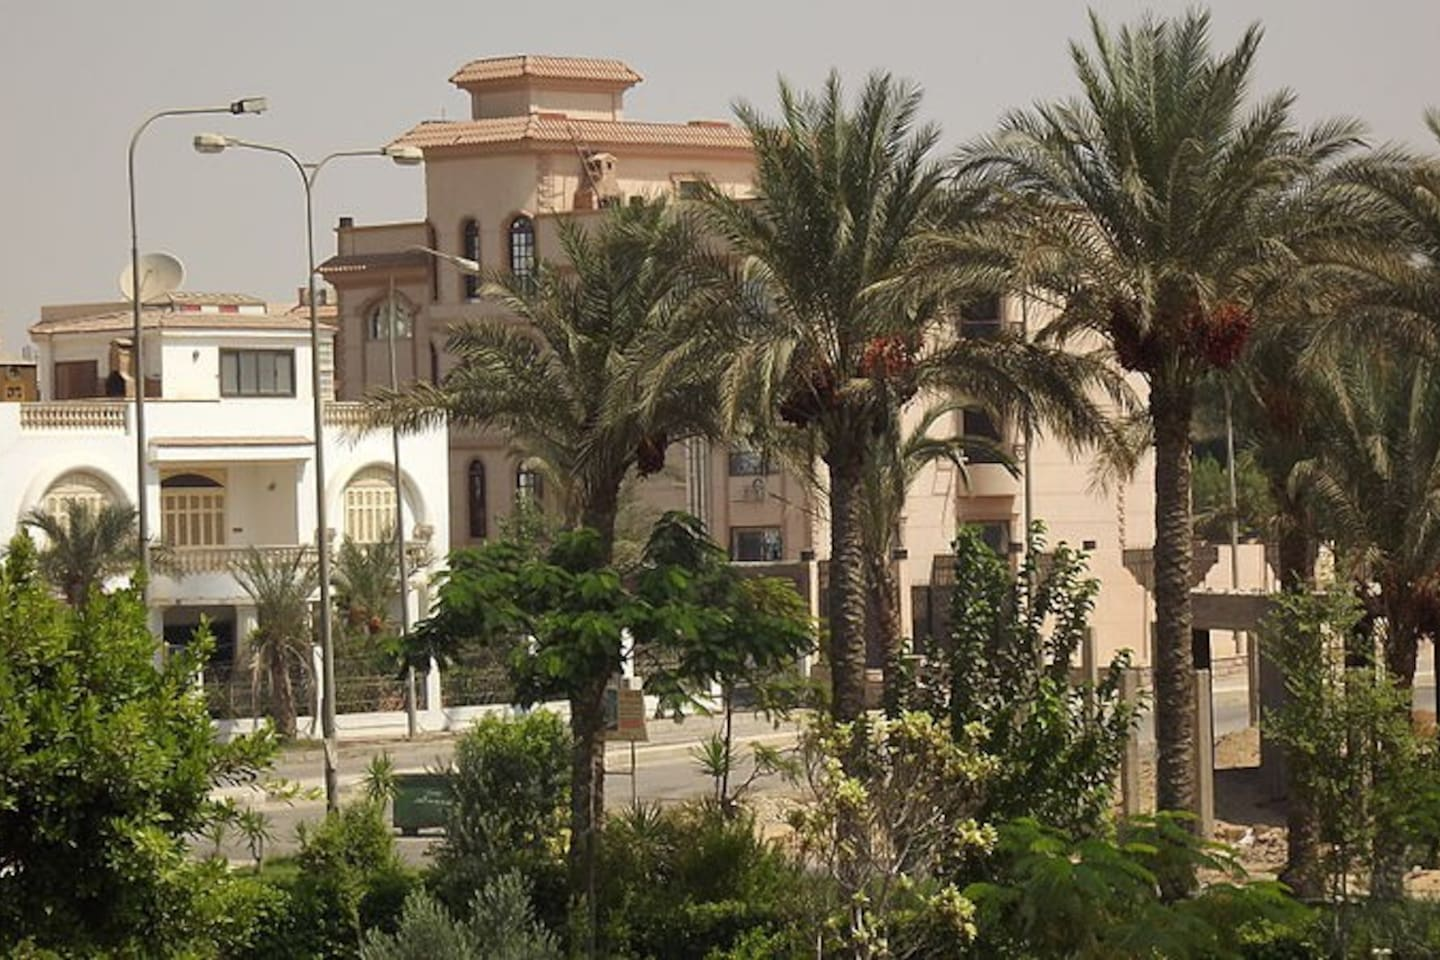 The location and the surrounding buildings - Villas and gardens